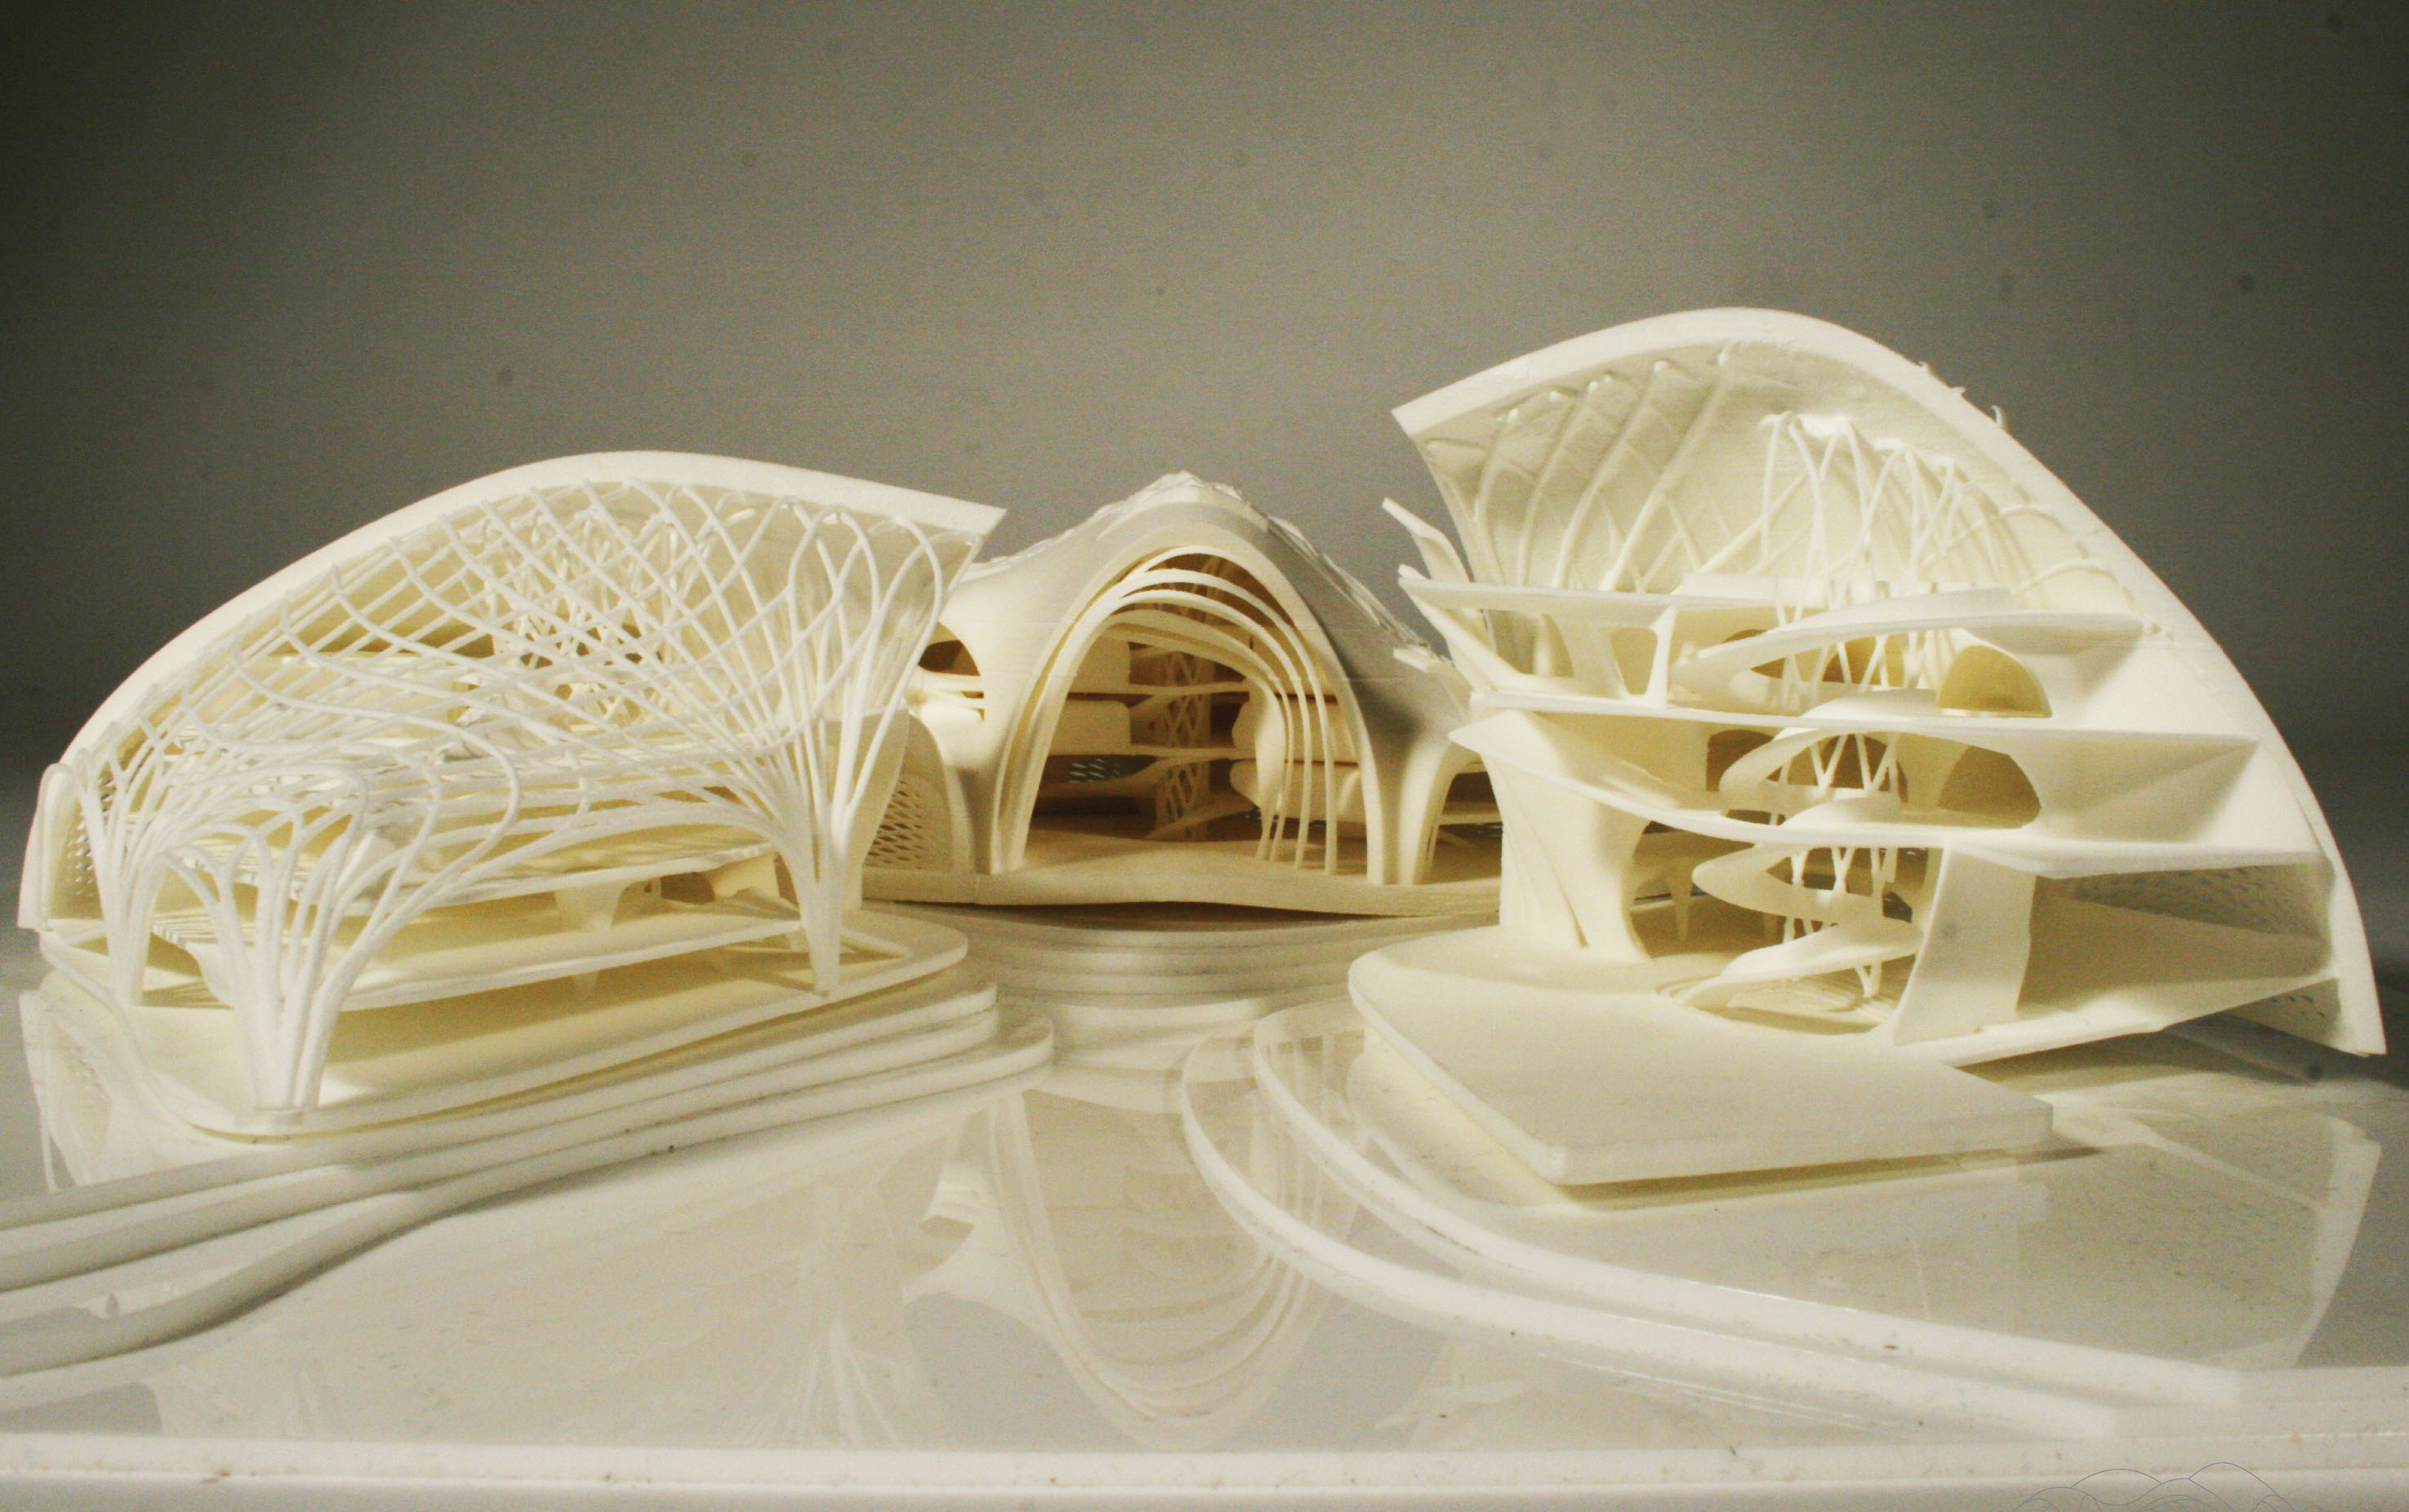 House printing 3d printing houses Making models for 3d printing